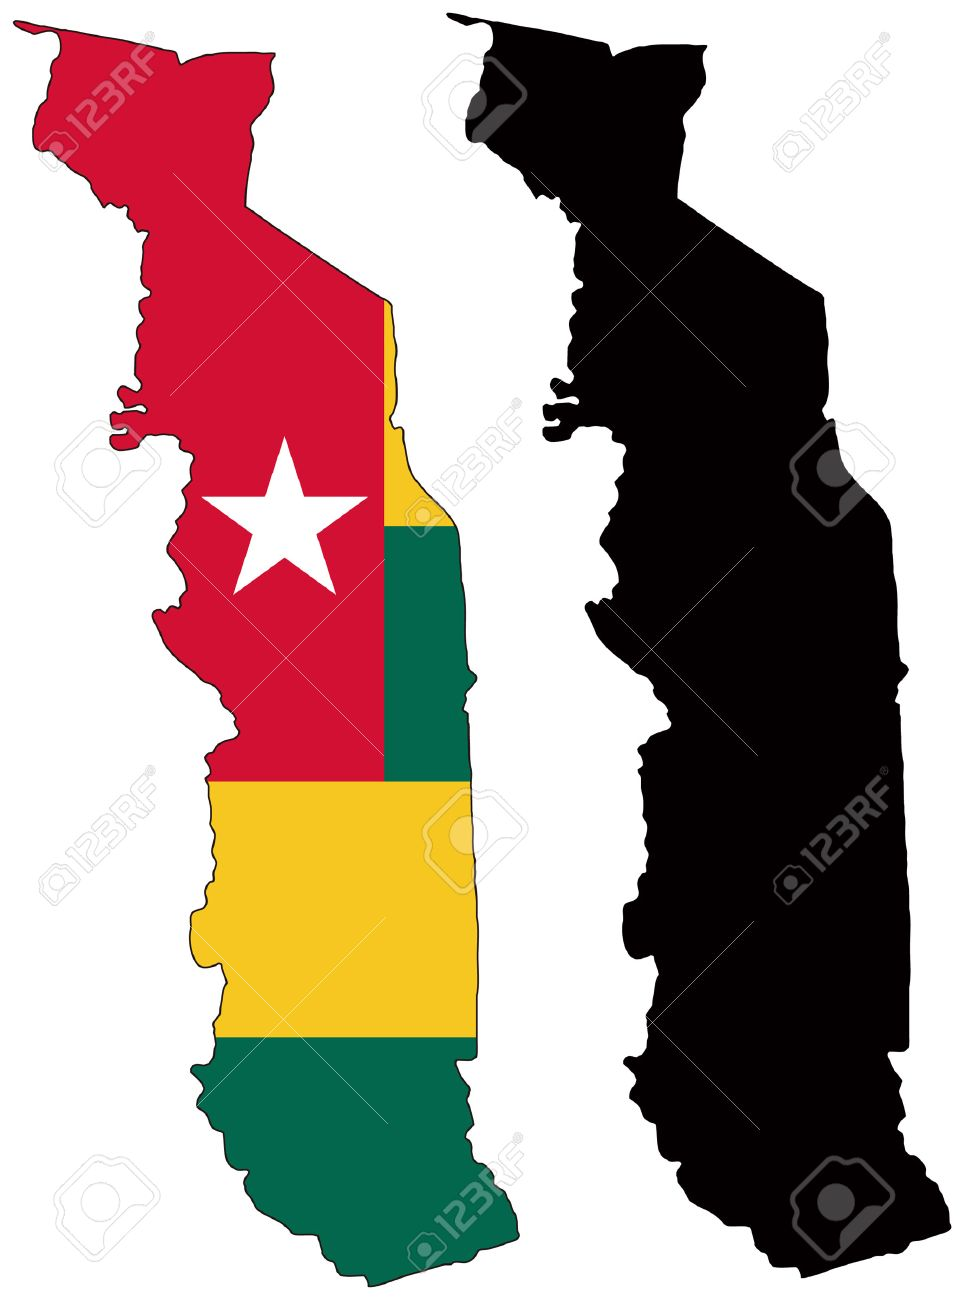 Vector Map And Flag Of Togo Royalty Free Cliparts Vectors And - Togo map outline